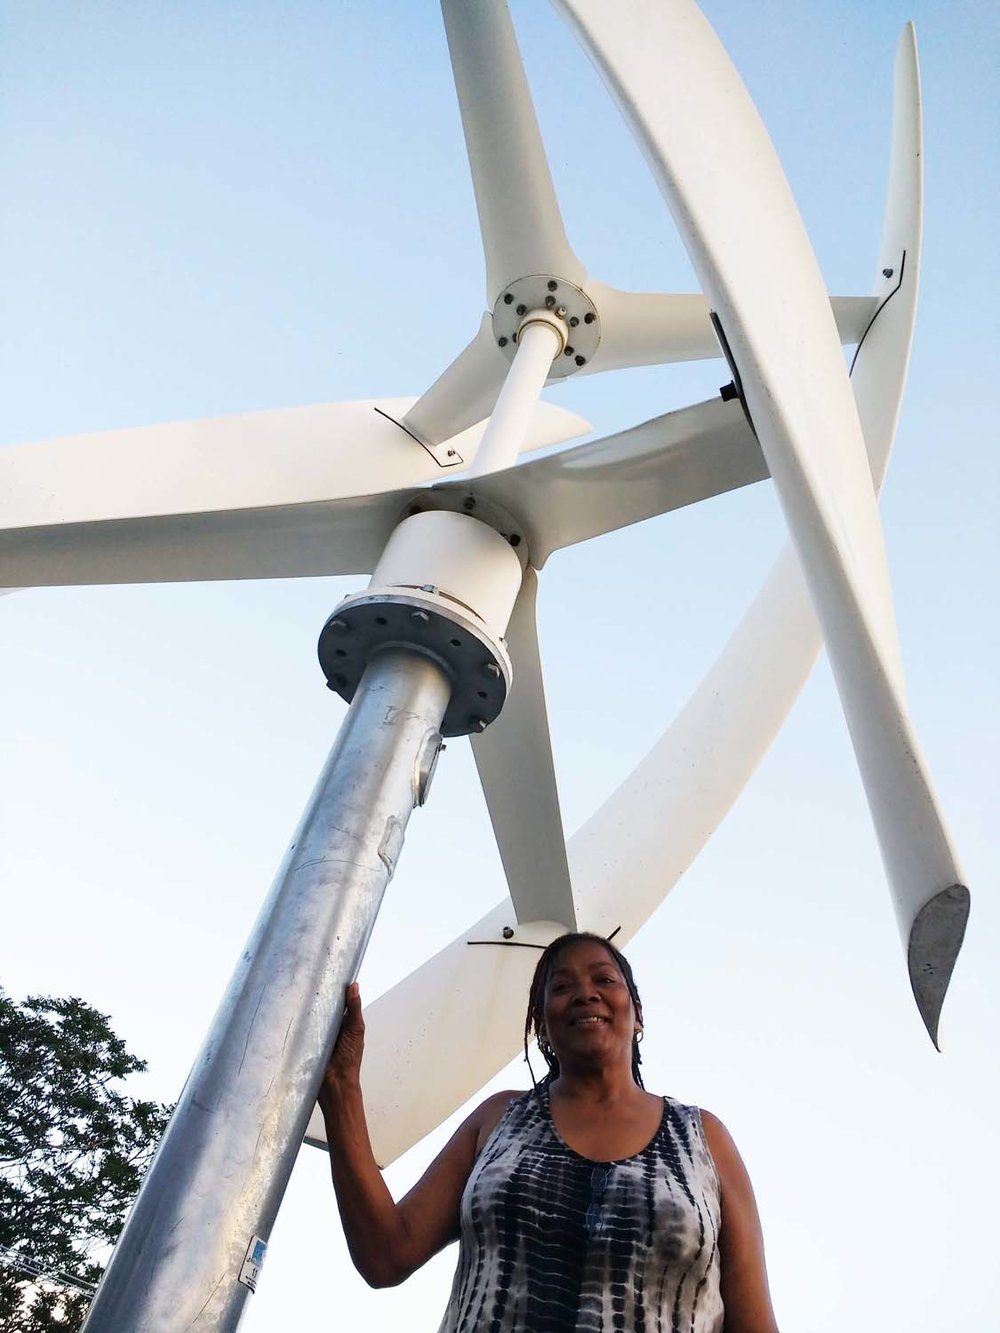 Annette Britton with her rooftop wind turbine.